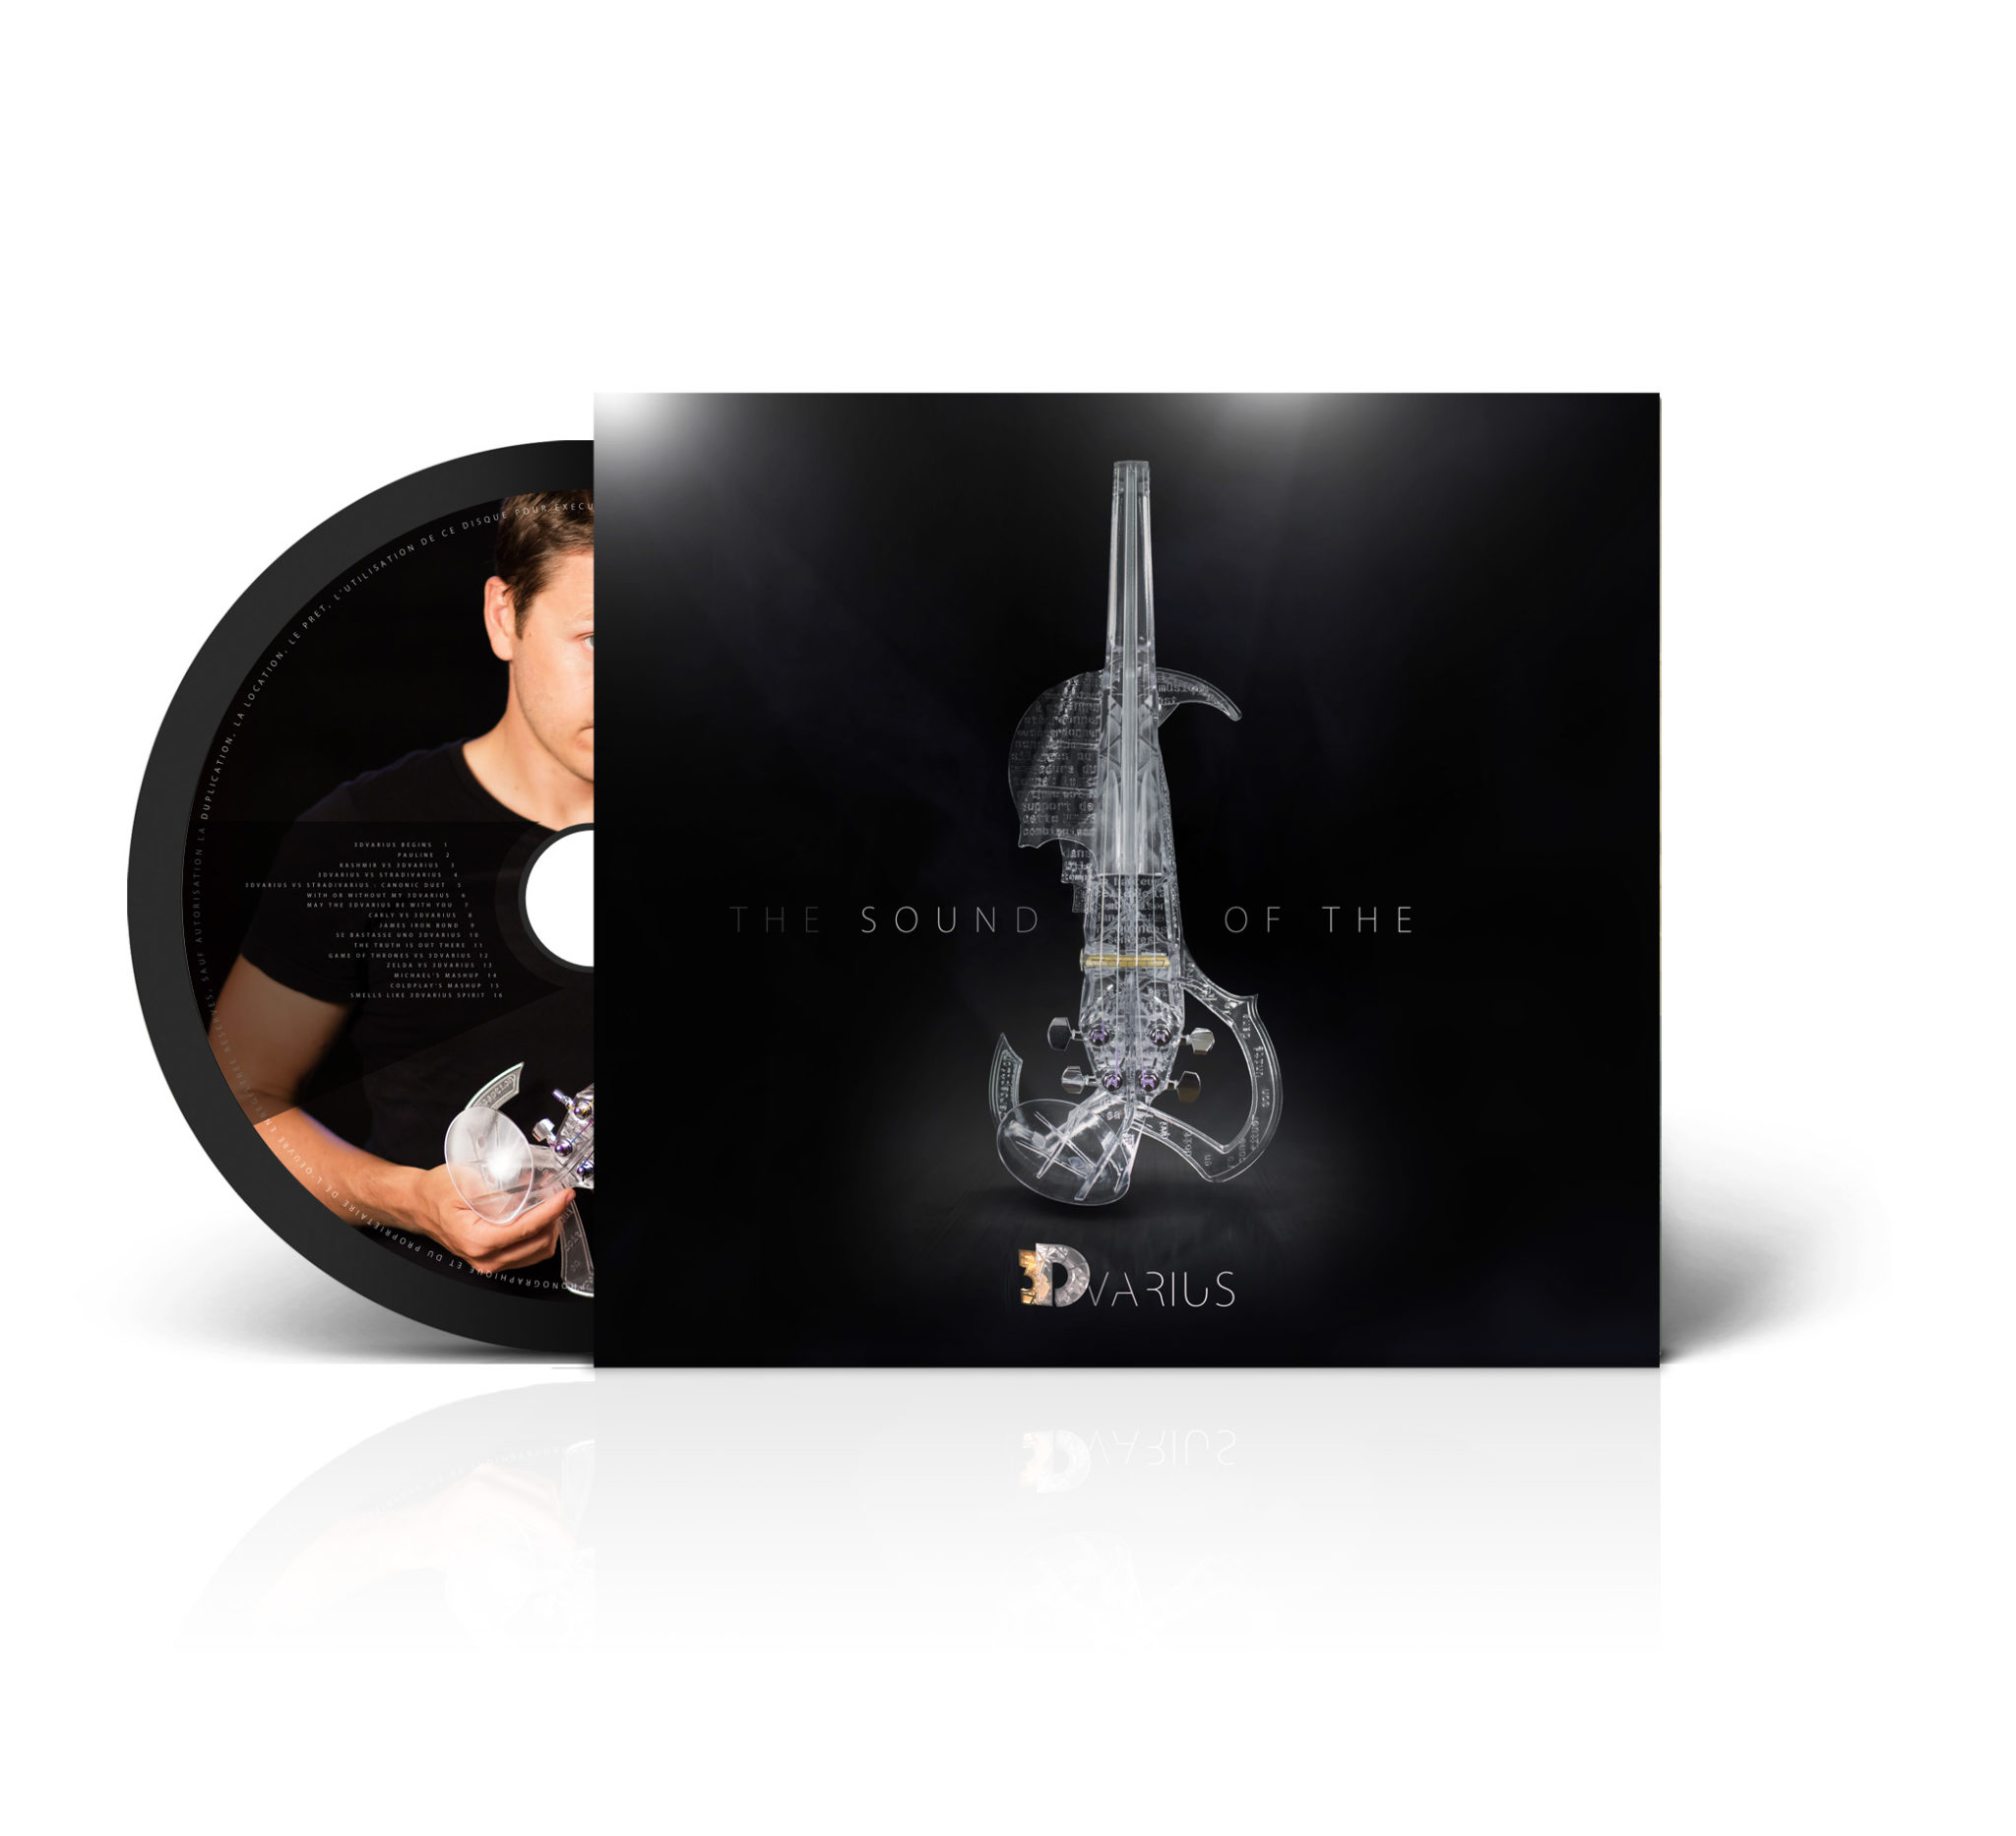 CD - The Sound of 3Dvarius